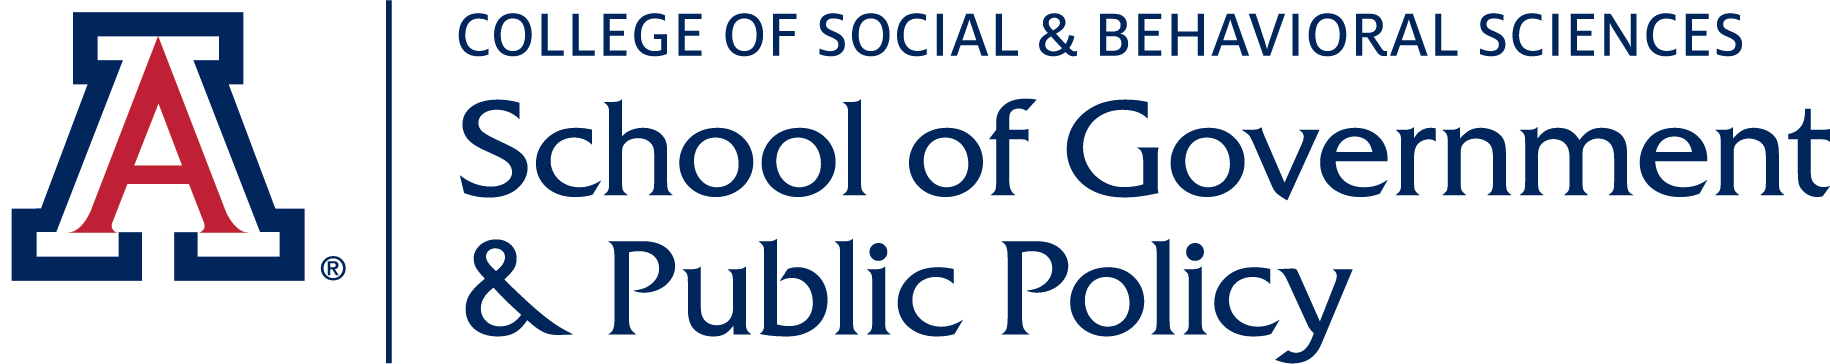 School of Government and Public Policy | University of Arizona | Home